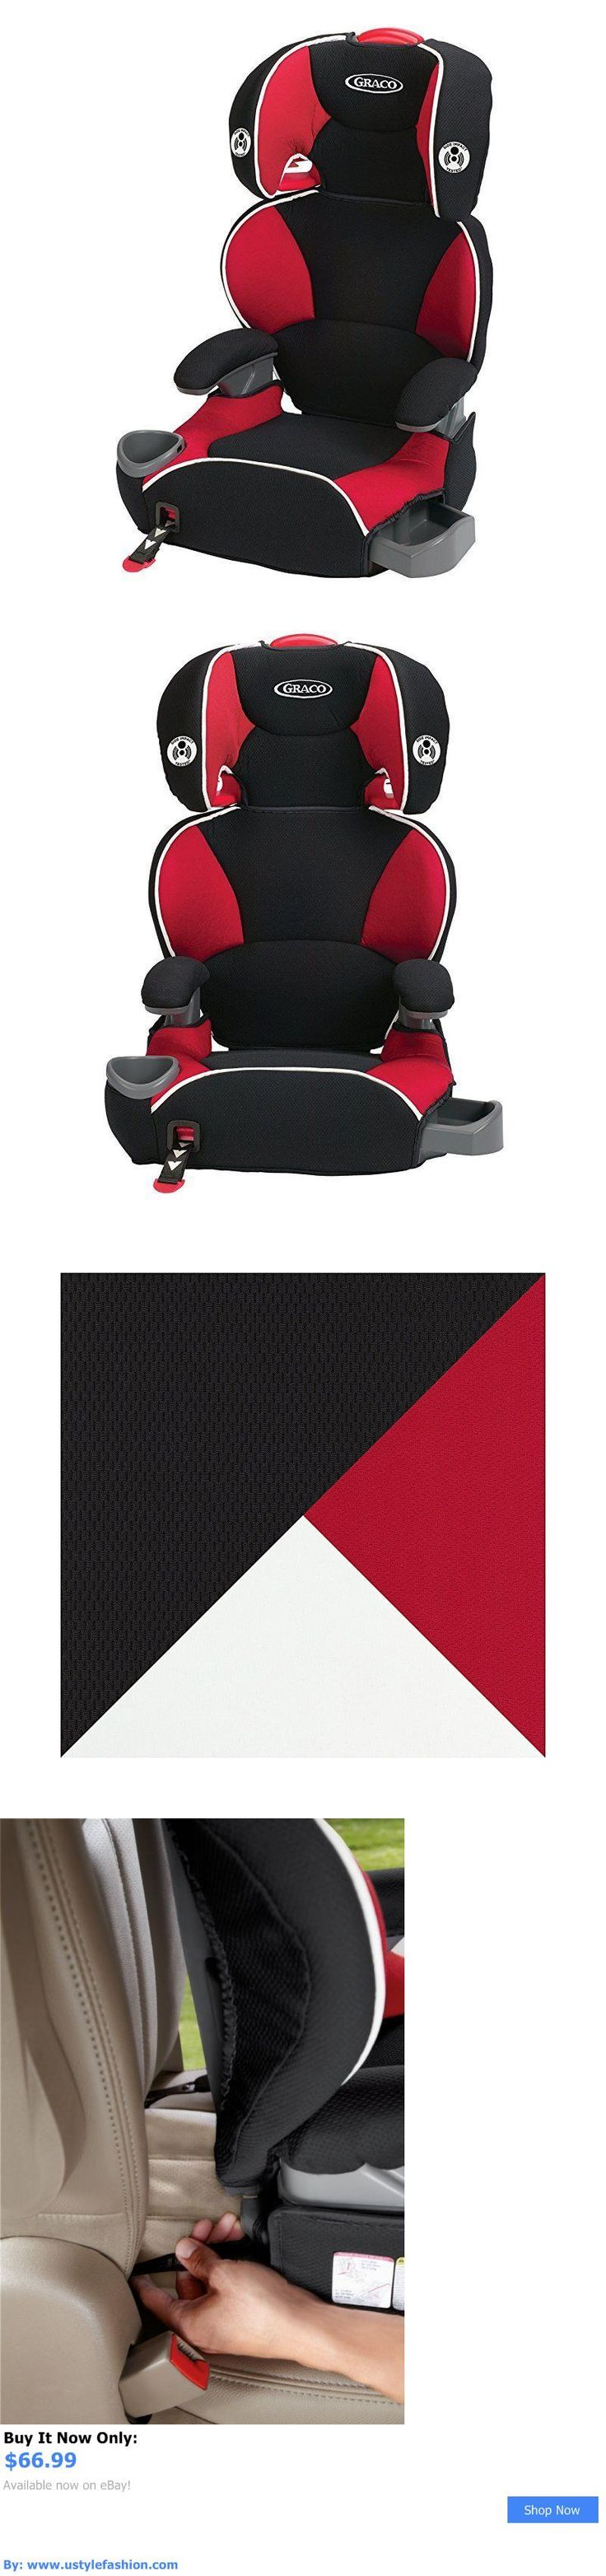 Booster Seats: Graco Affix Youth Booster Seat With Latch System, Atomic BUY IT NOW ONLY: $66.99 #ustylefashionBoosterSeats OR #ustylefashion